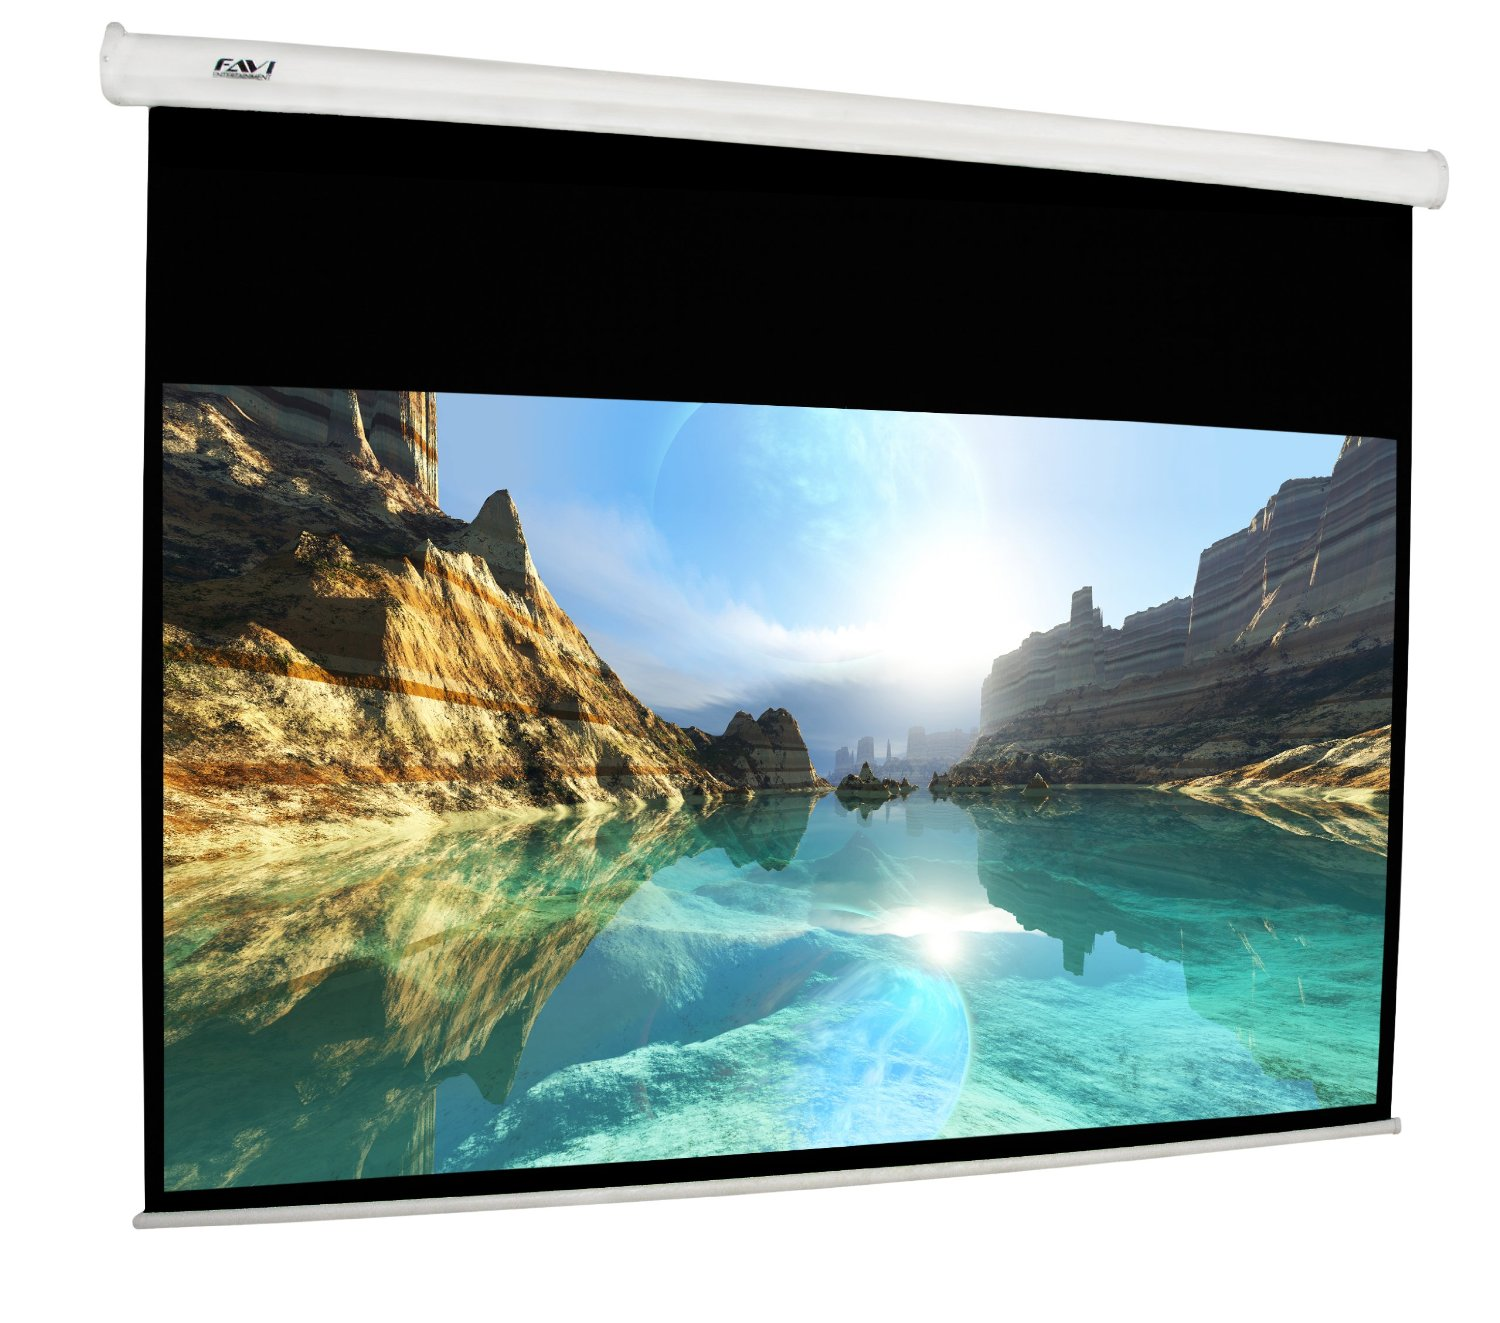 FAVI Pull-Down Video Projection Screen